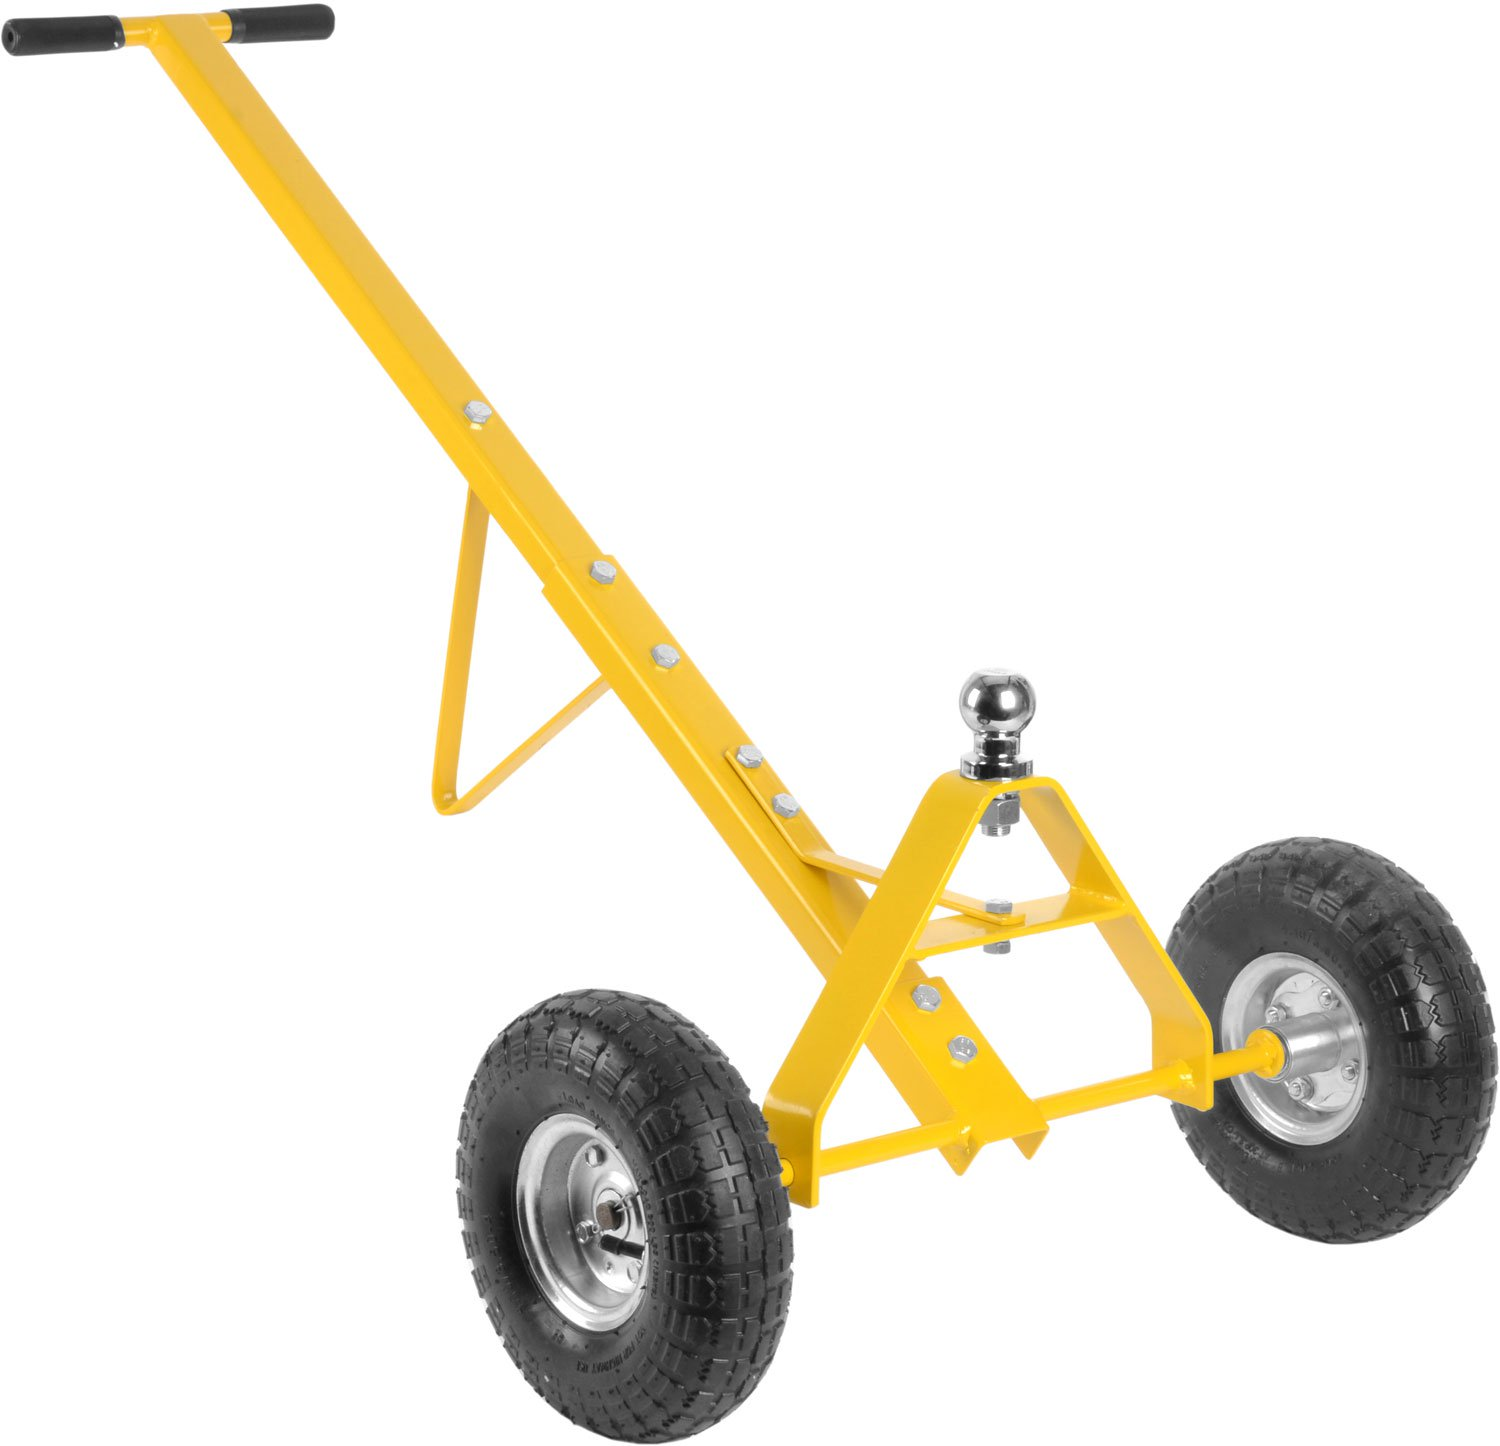 Discount Ramps TD-3500 Boat Trailer Dolly 3,500 lb GTW or 600 lb Tongue Weight with 1-7//8 Hitch Ball